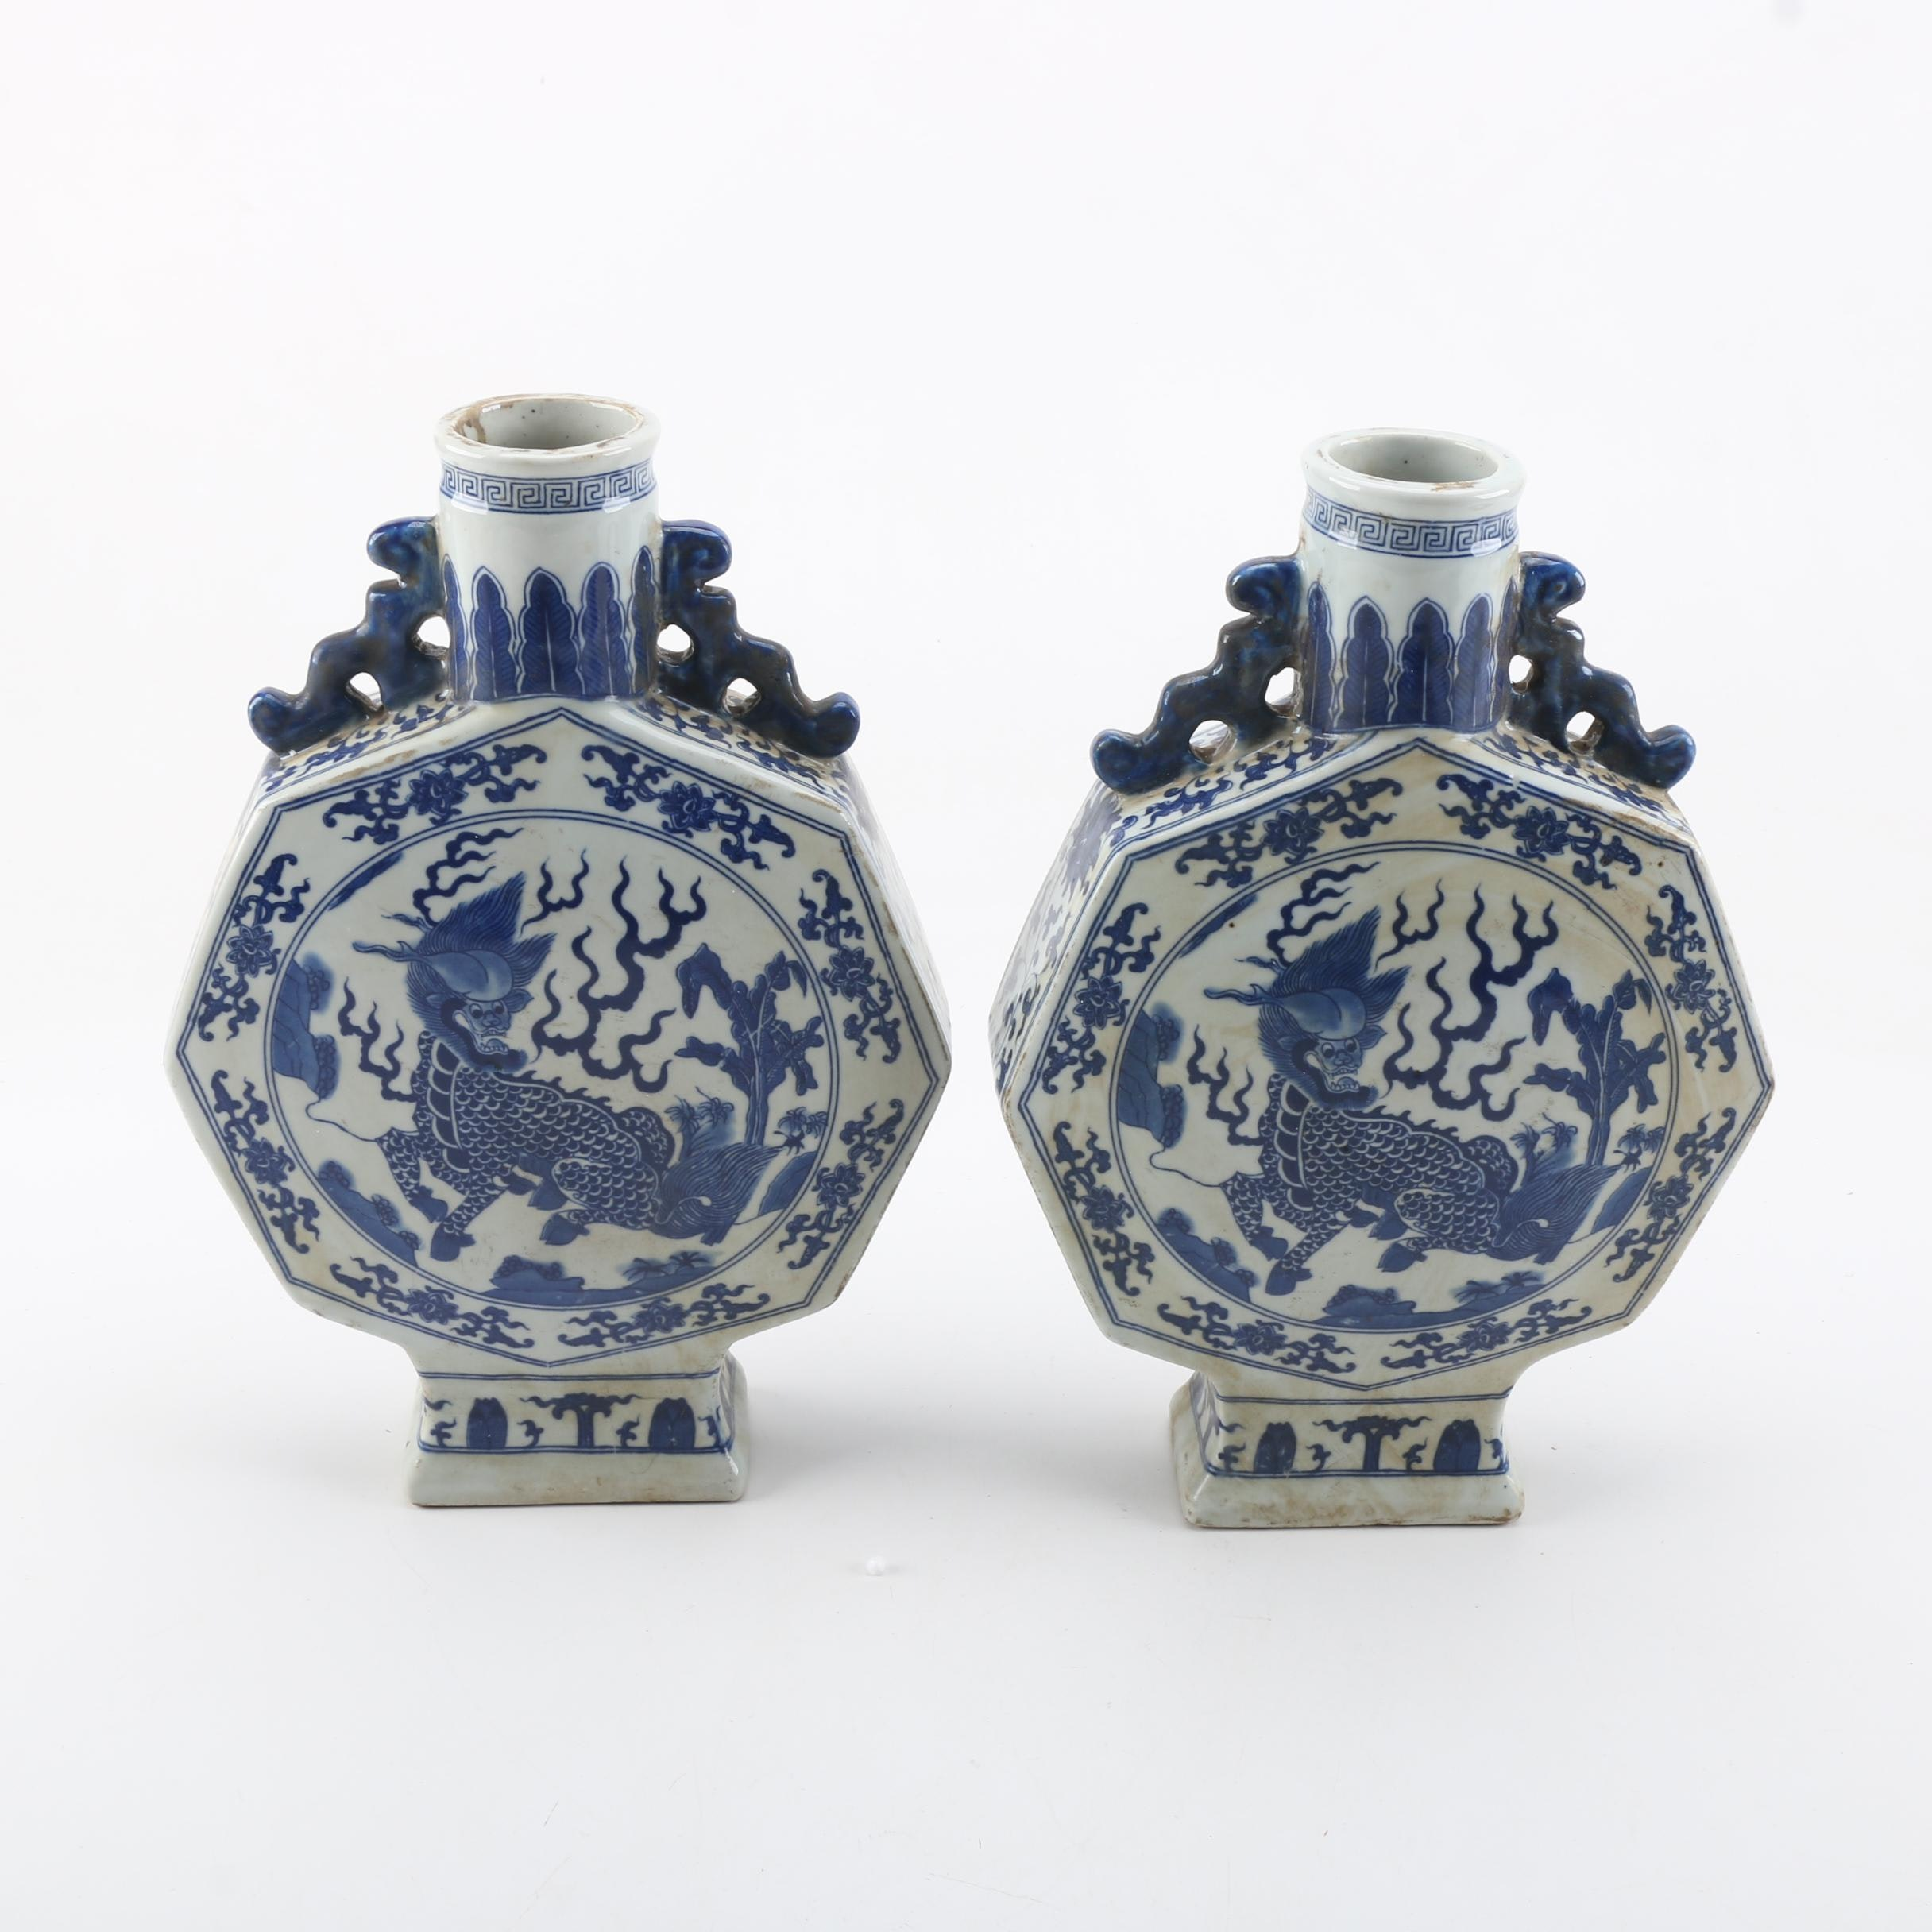 Pair of Chinese Ceramic Moon Flask Vases